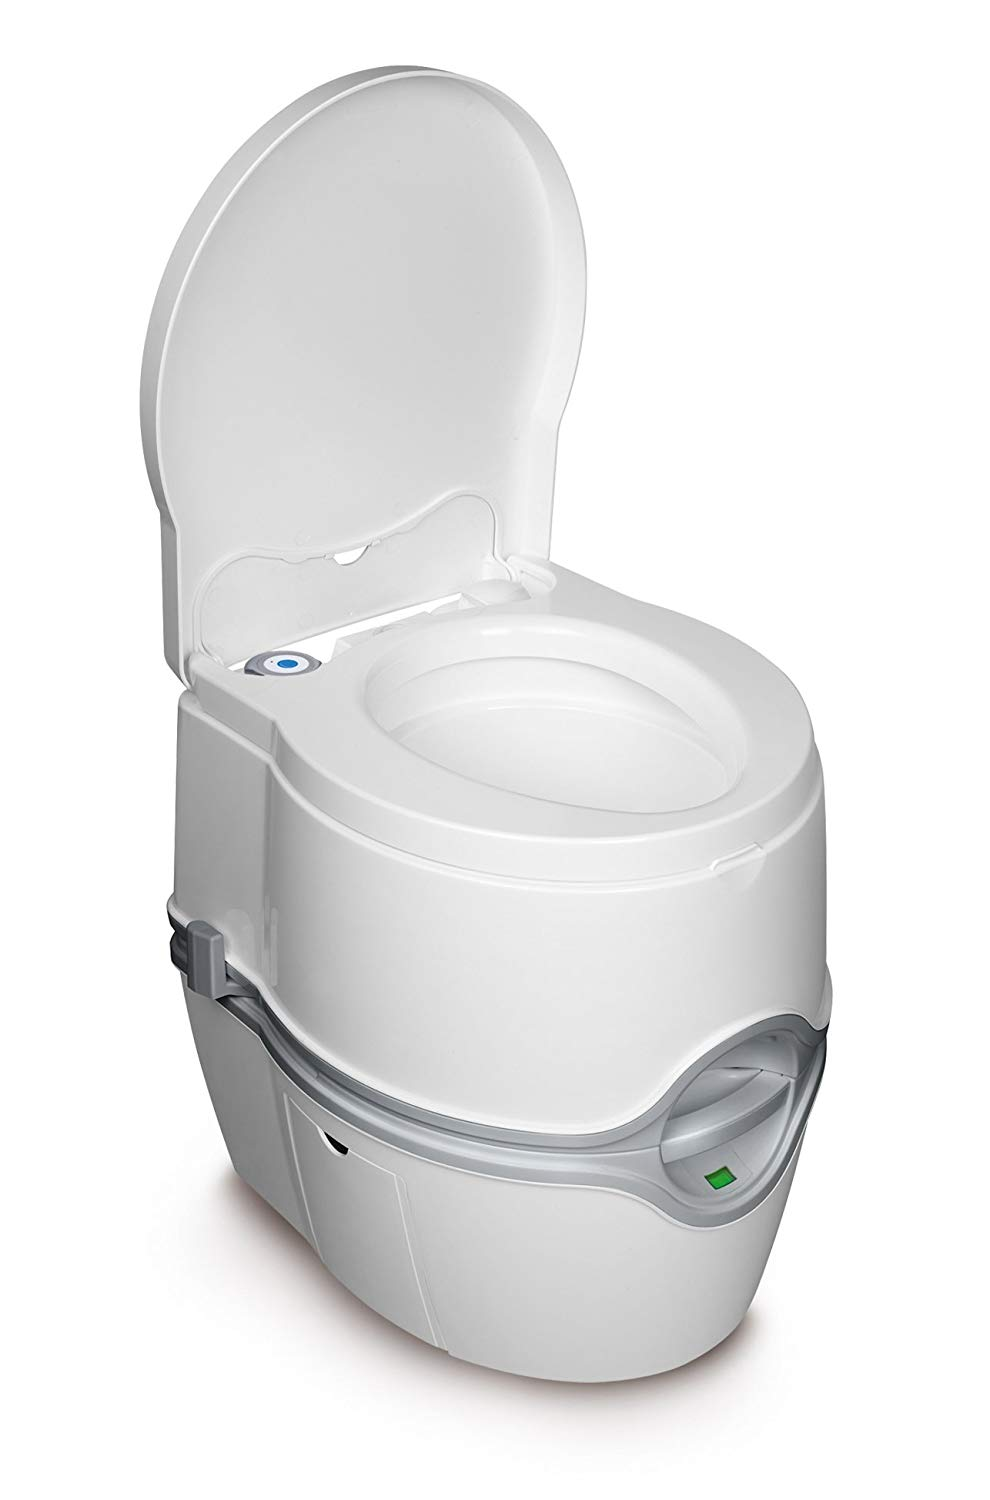 Porta Potti Curve Portable Toilet for Camping